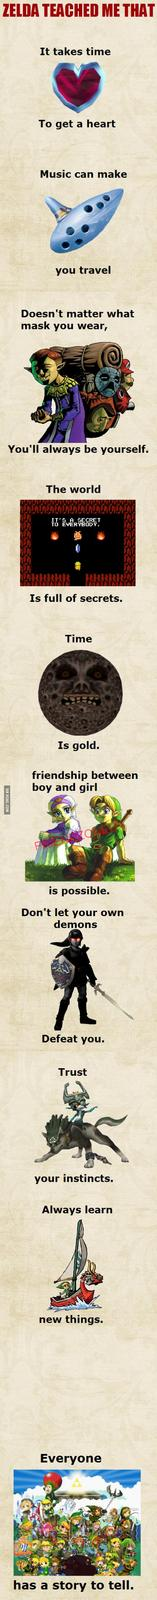 Zelda teached me that...